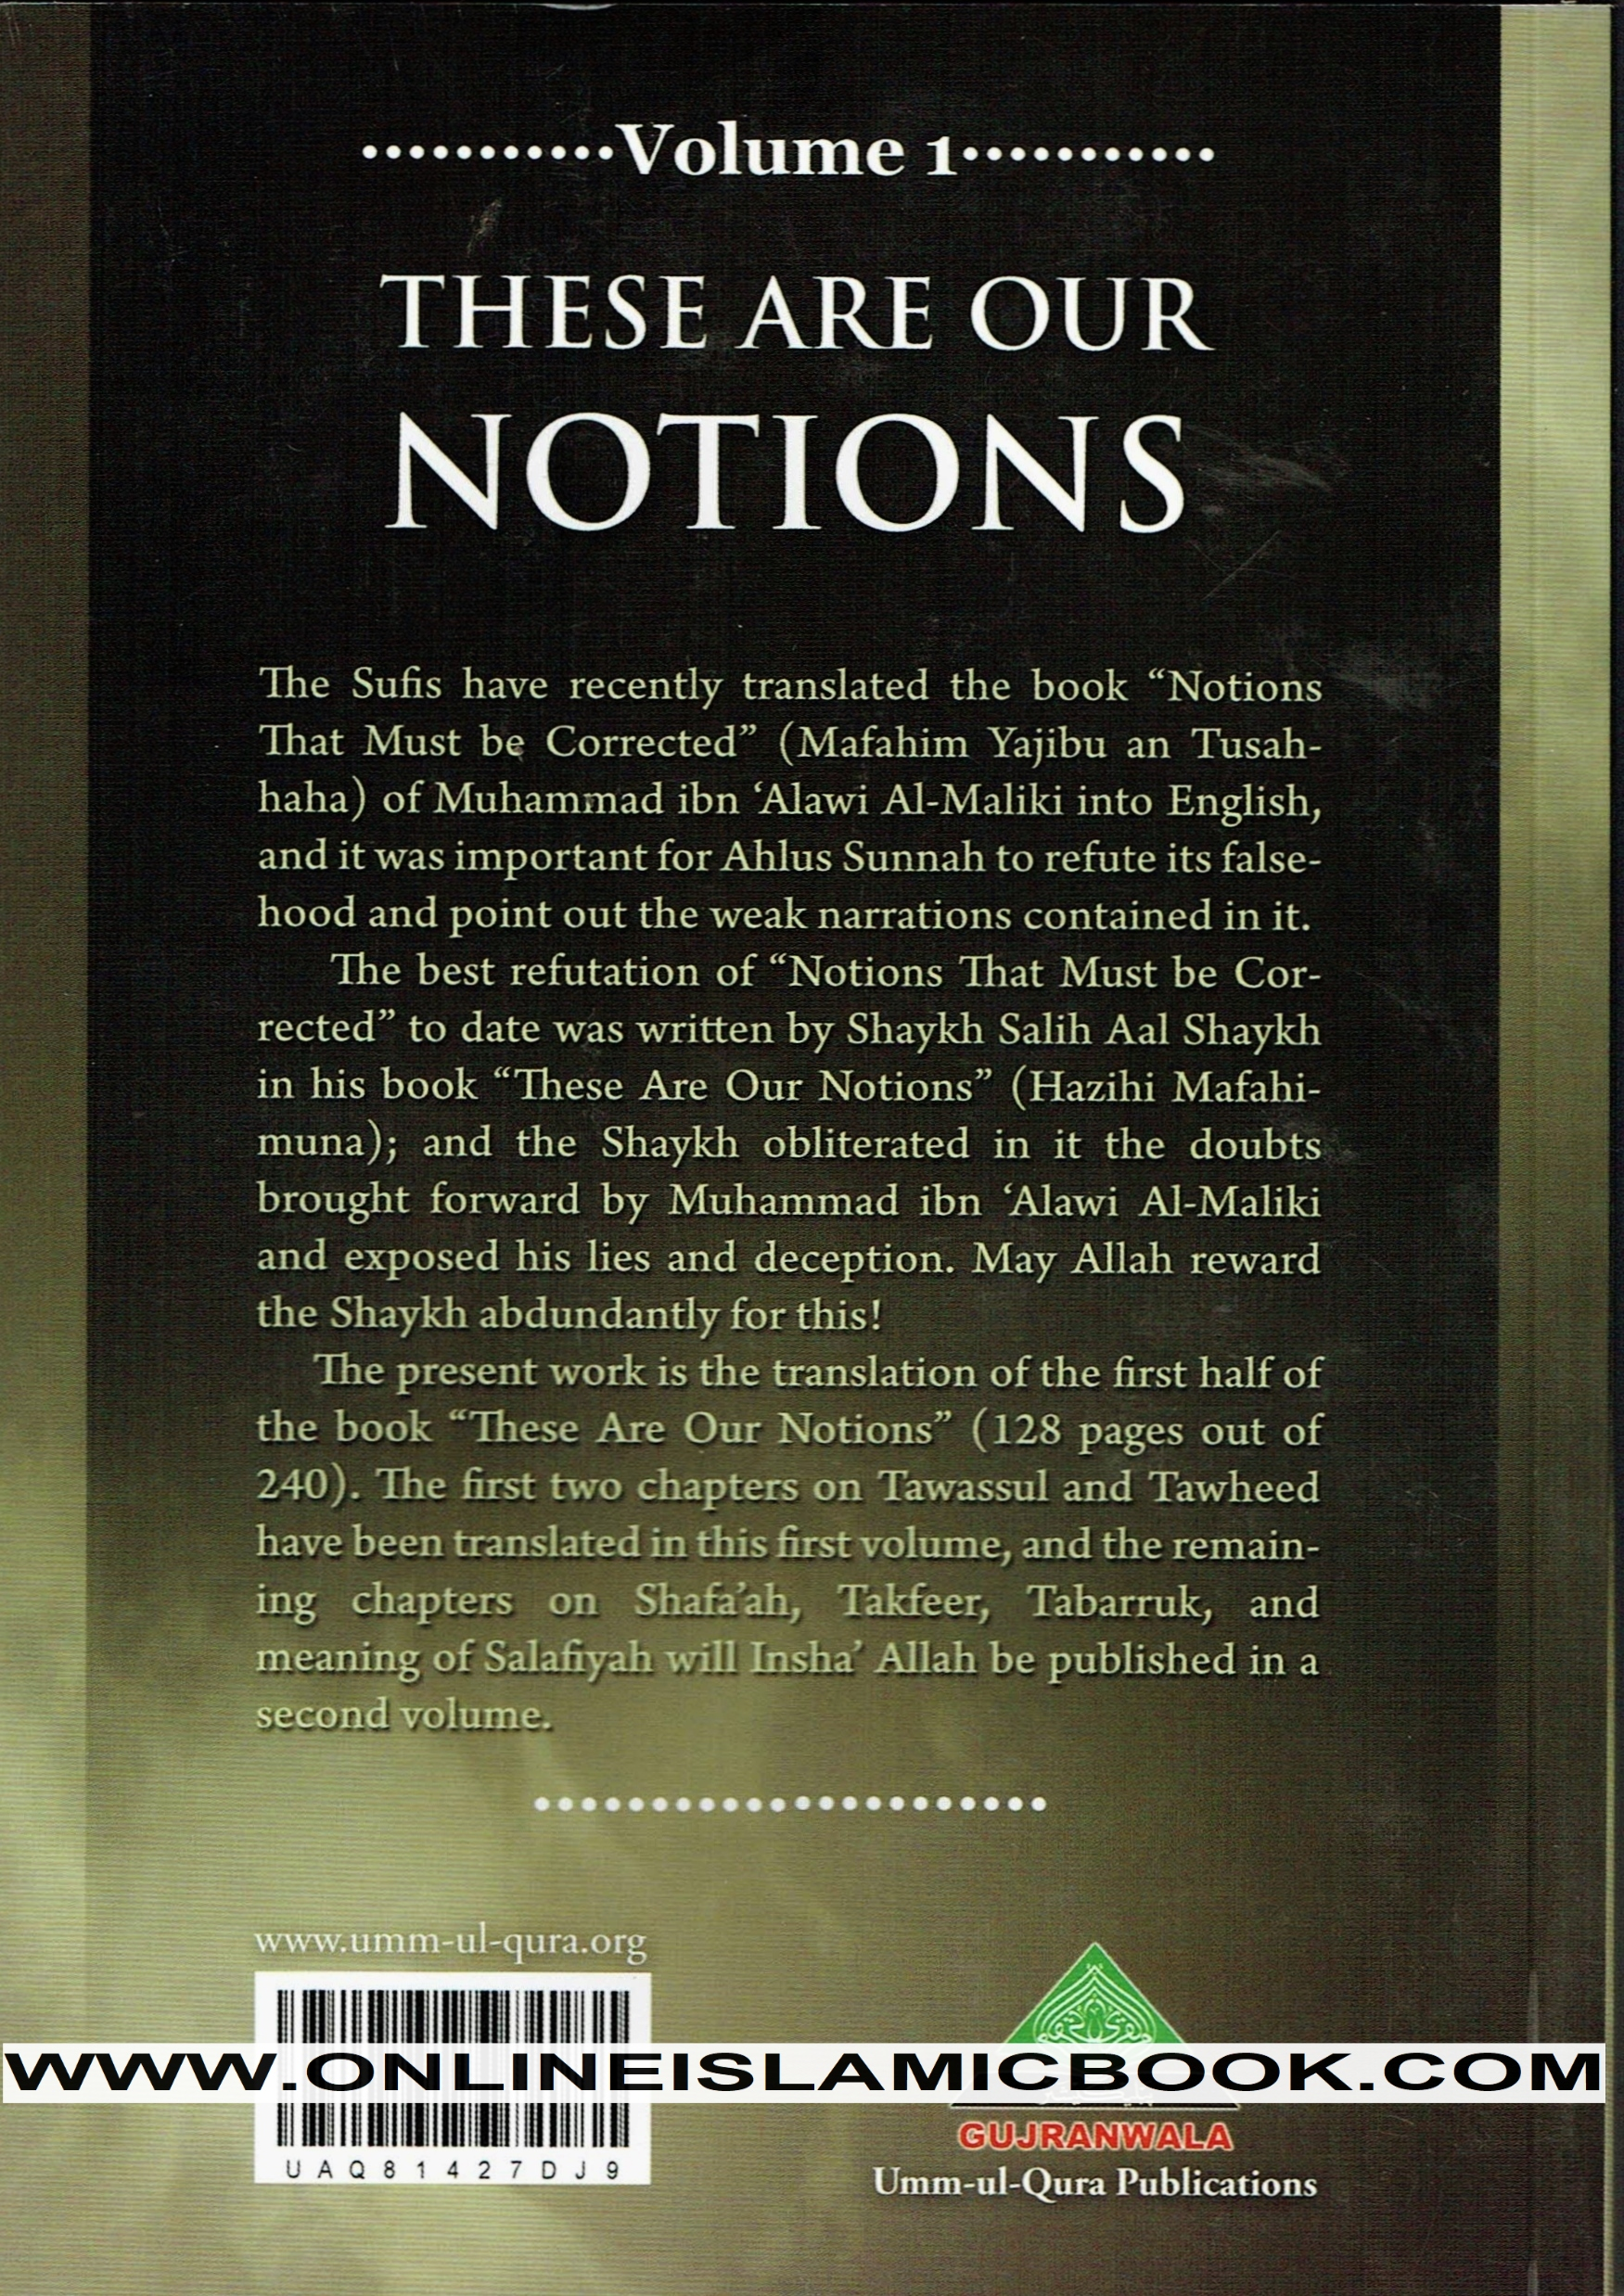 these-are-our-notions-by-shaykh-salih-aal-shaykh-umm-ul-qura-2-.jpg